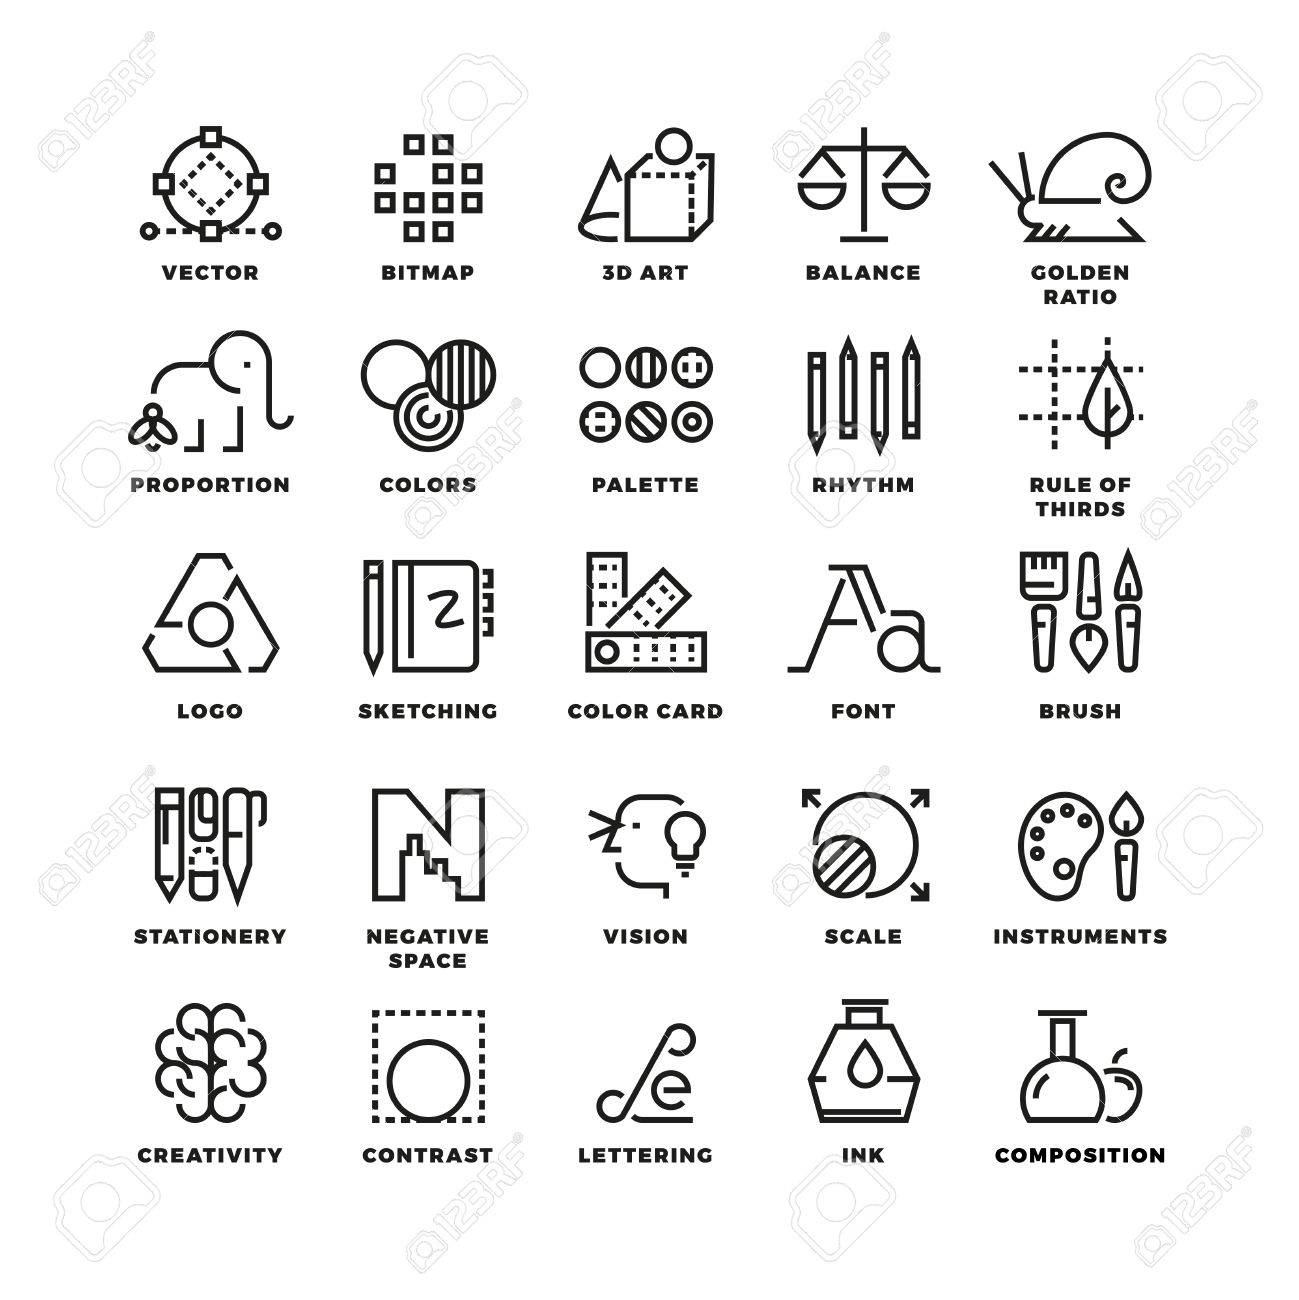 creative design process linear vector icons for web app tool